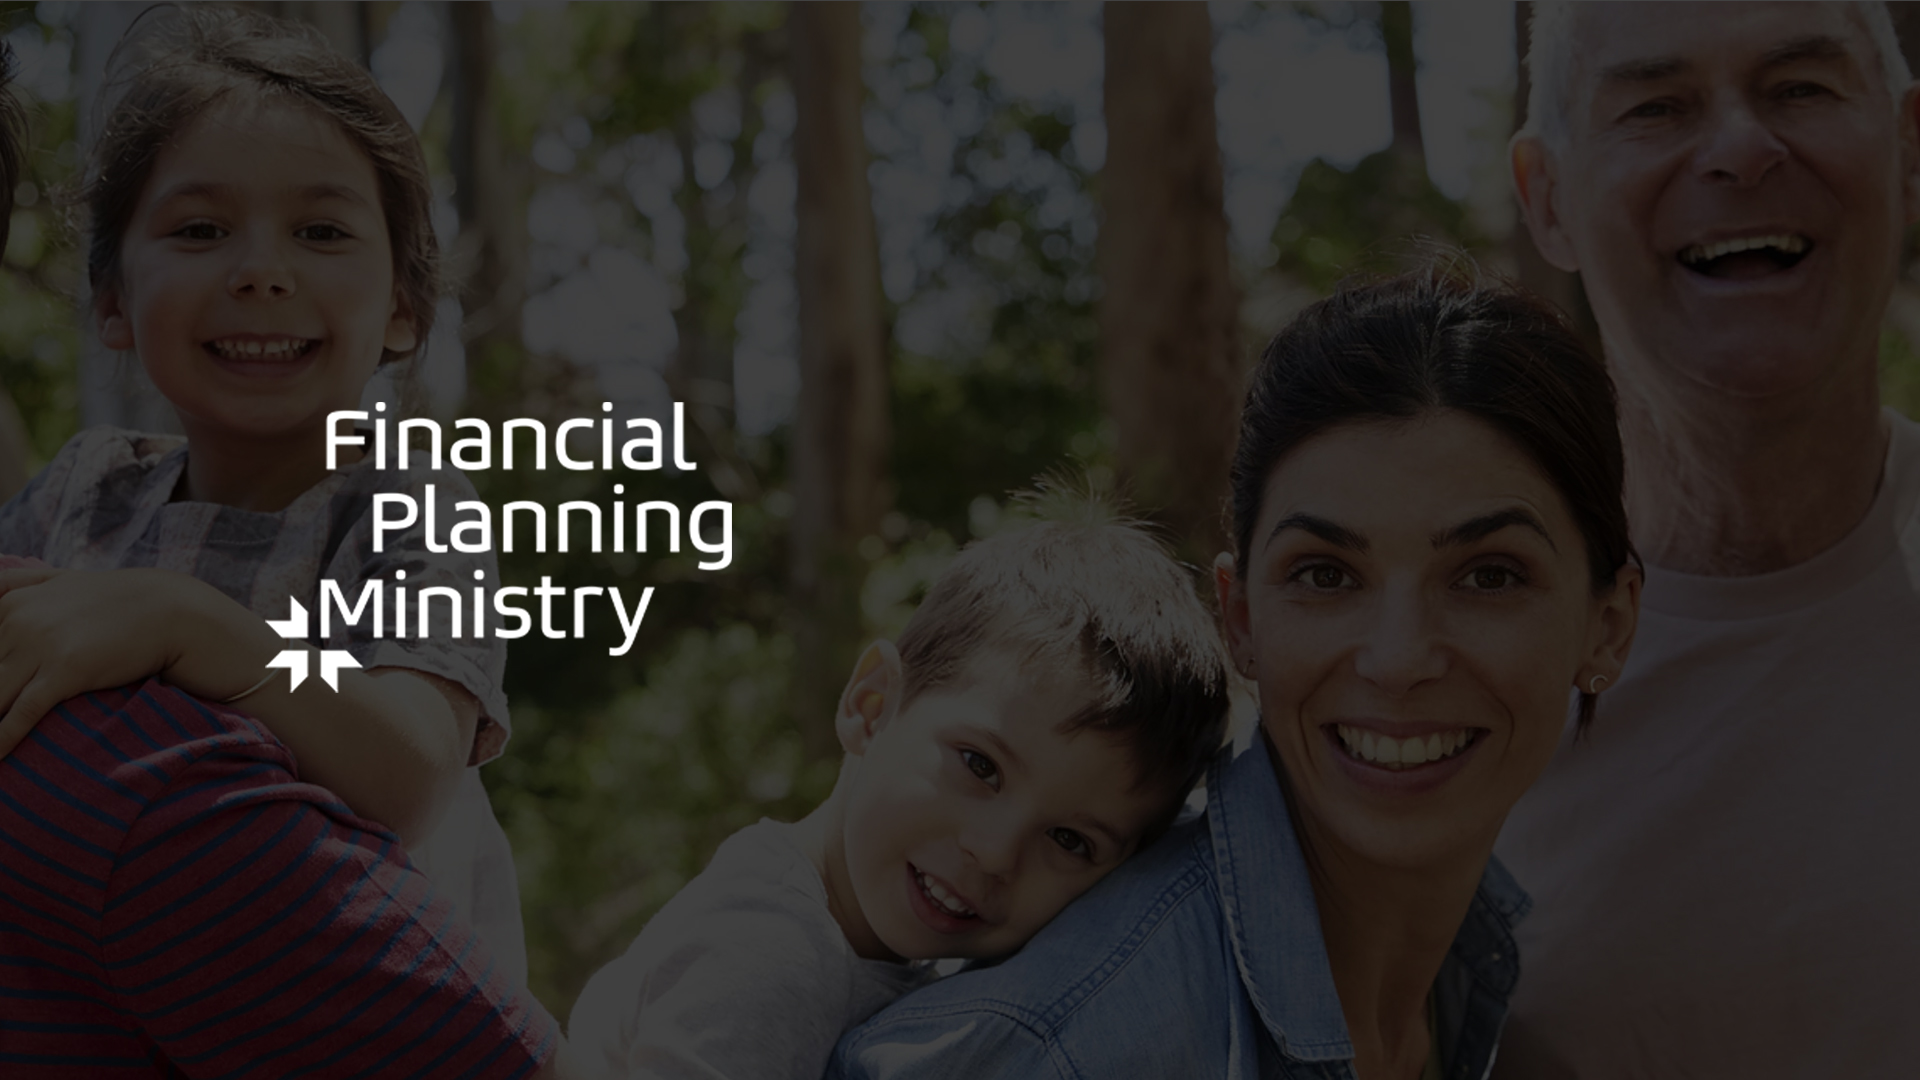 Image: Financial Planning Ministry Meeting